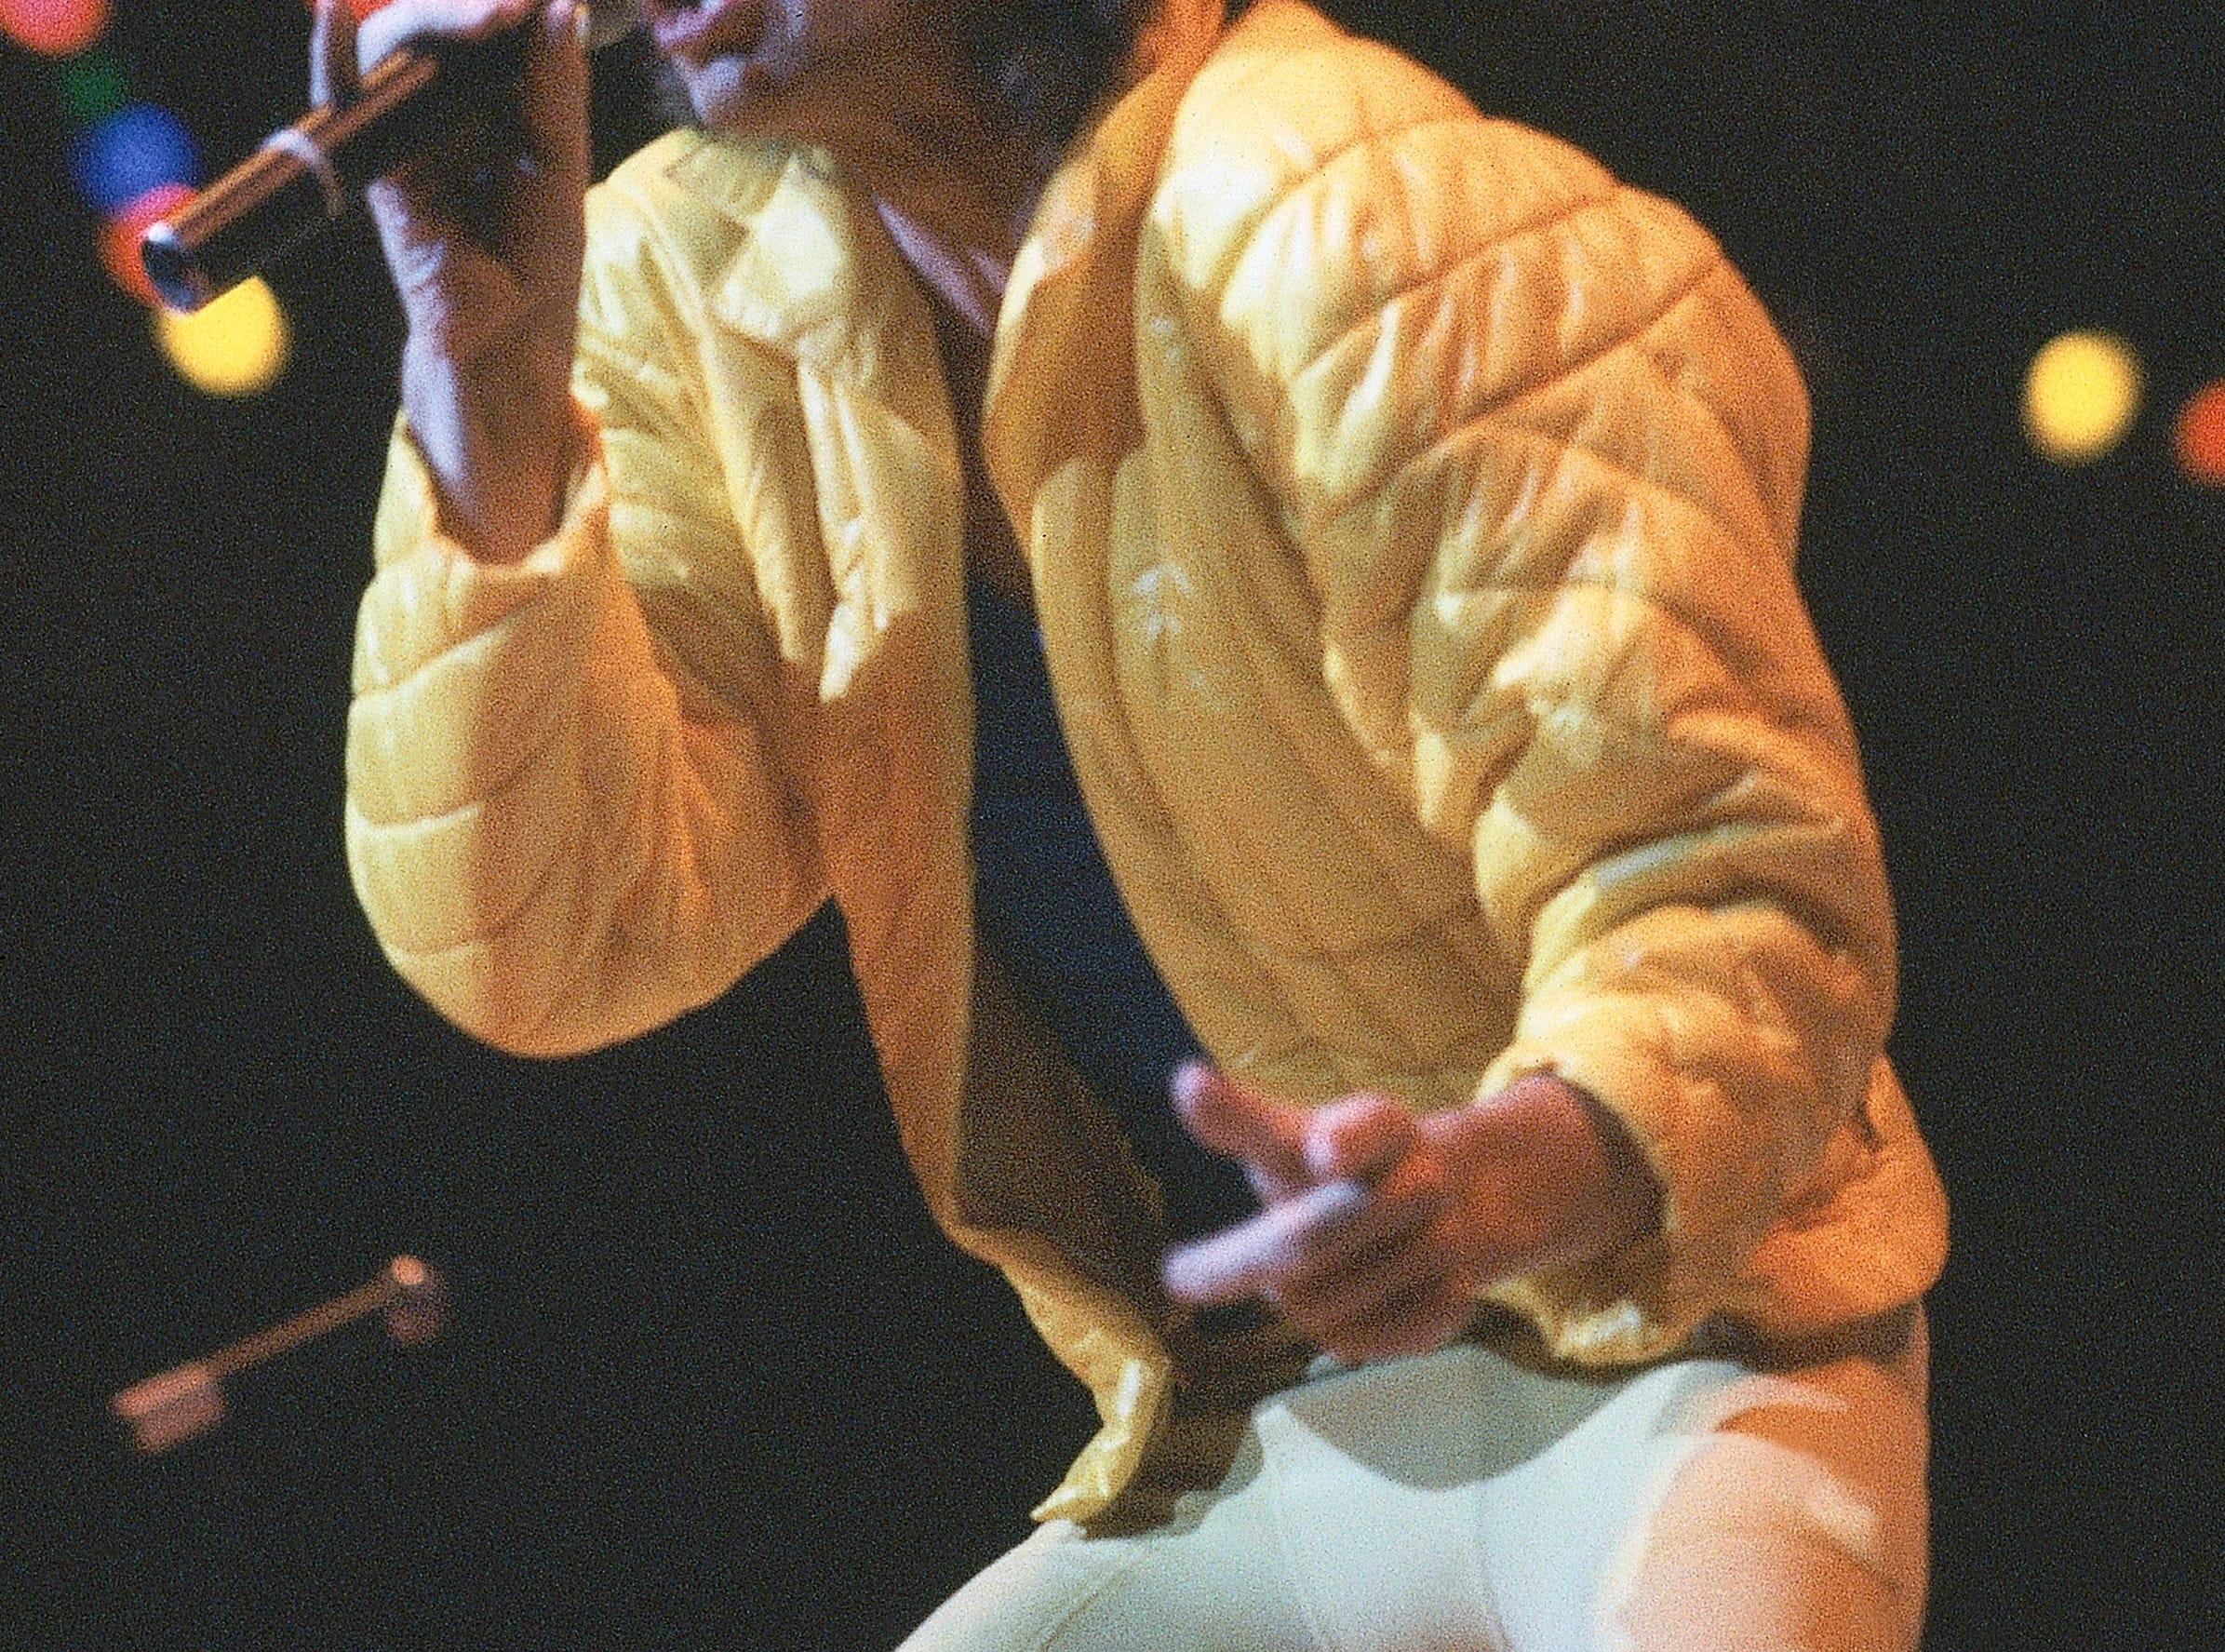 Mick Jagger performs with the Rolling Stones at their November 12, 1981 concert at Madison Square Garden in New York.    (AP Photo/Ray Stubblebine)